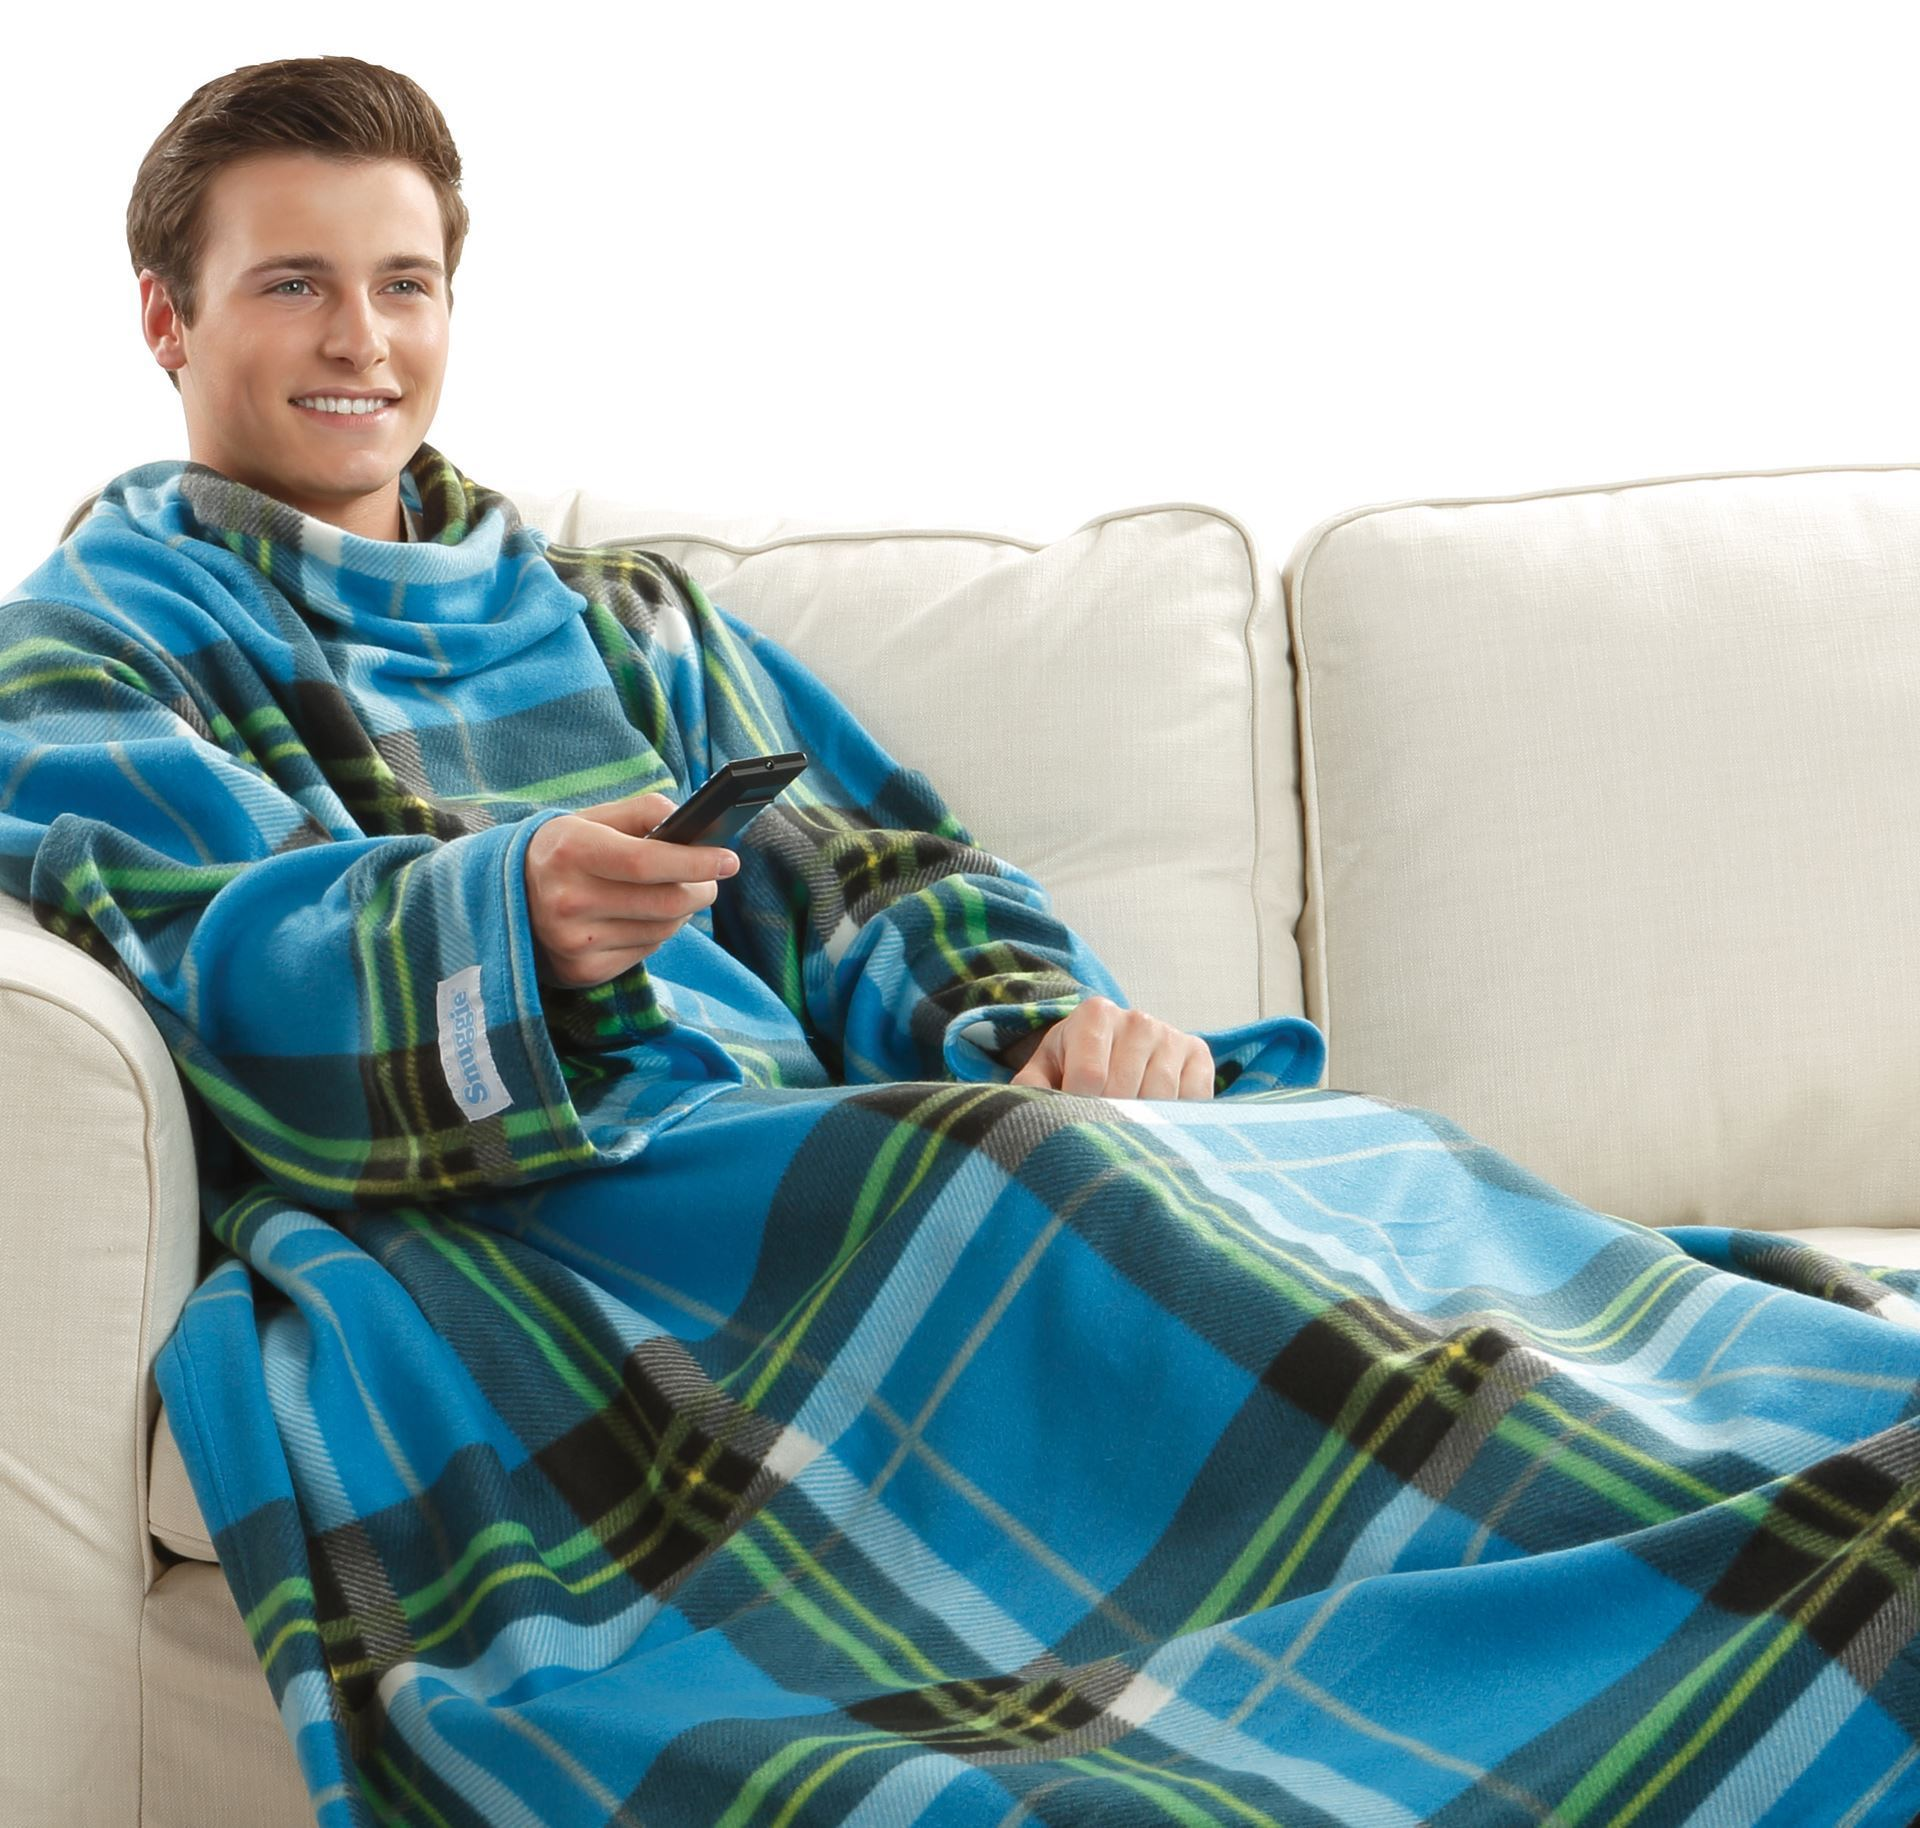 us court confirms snuggies are blankets not clothes the verge